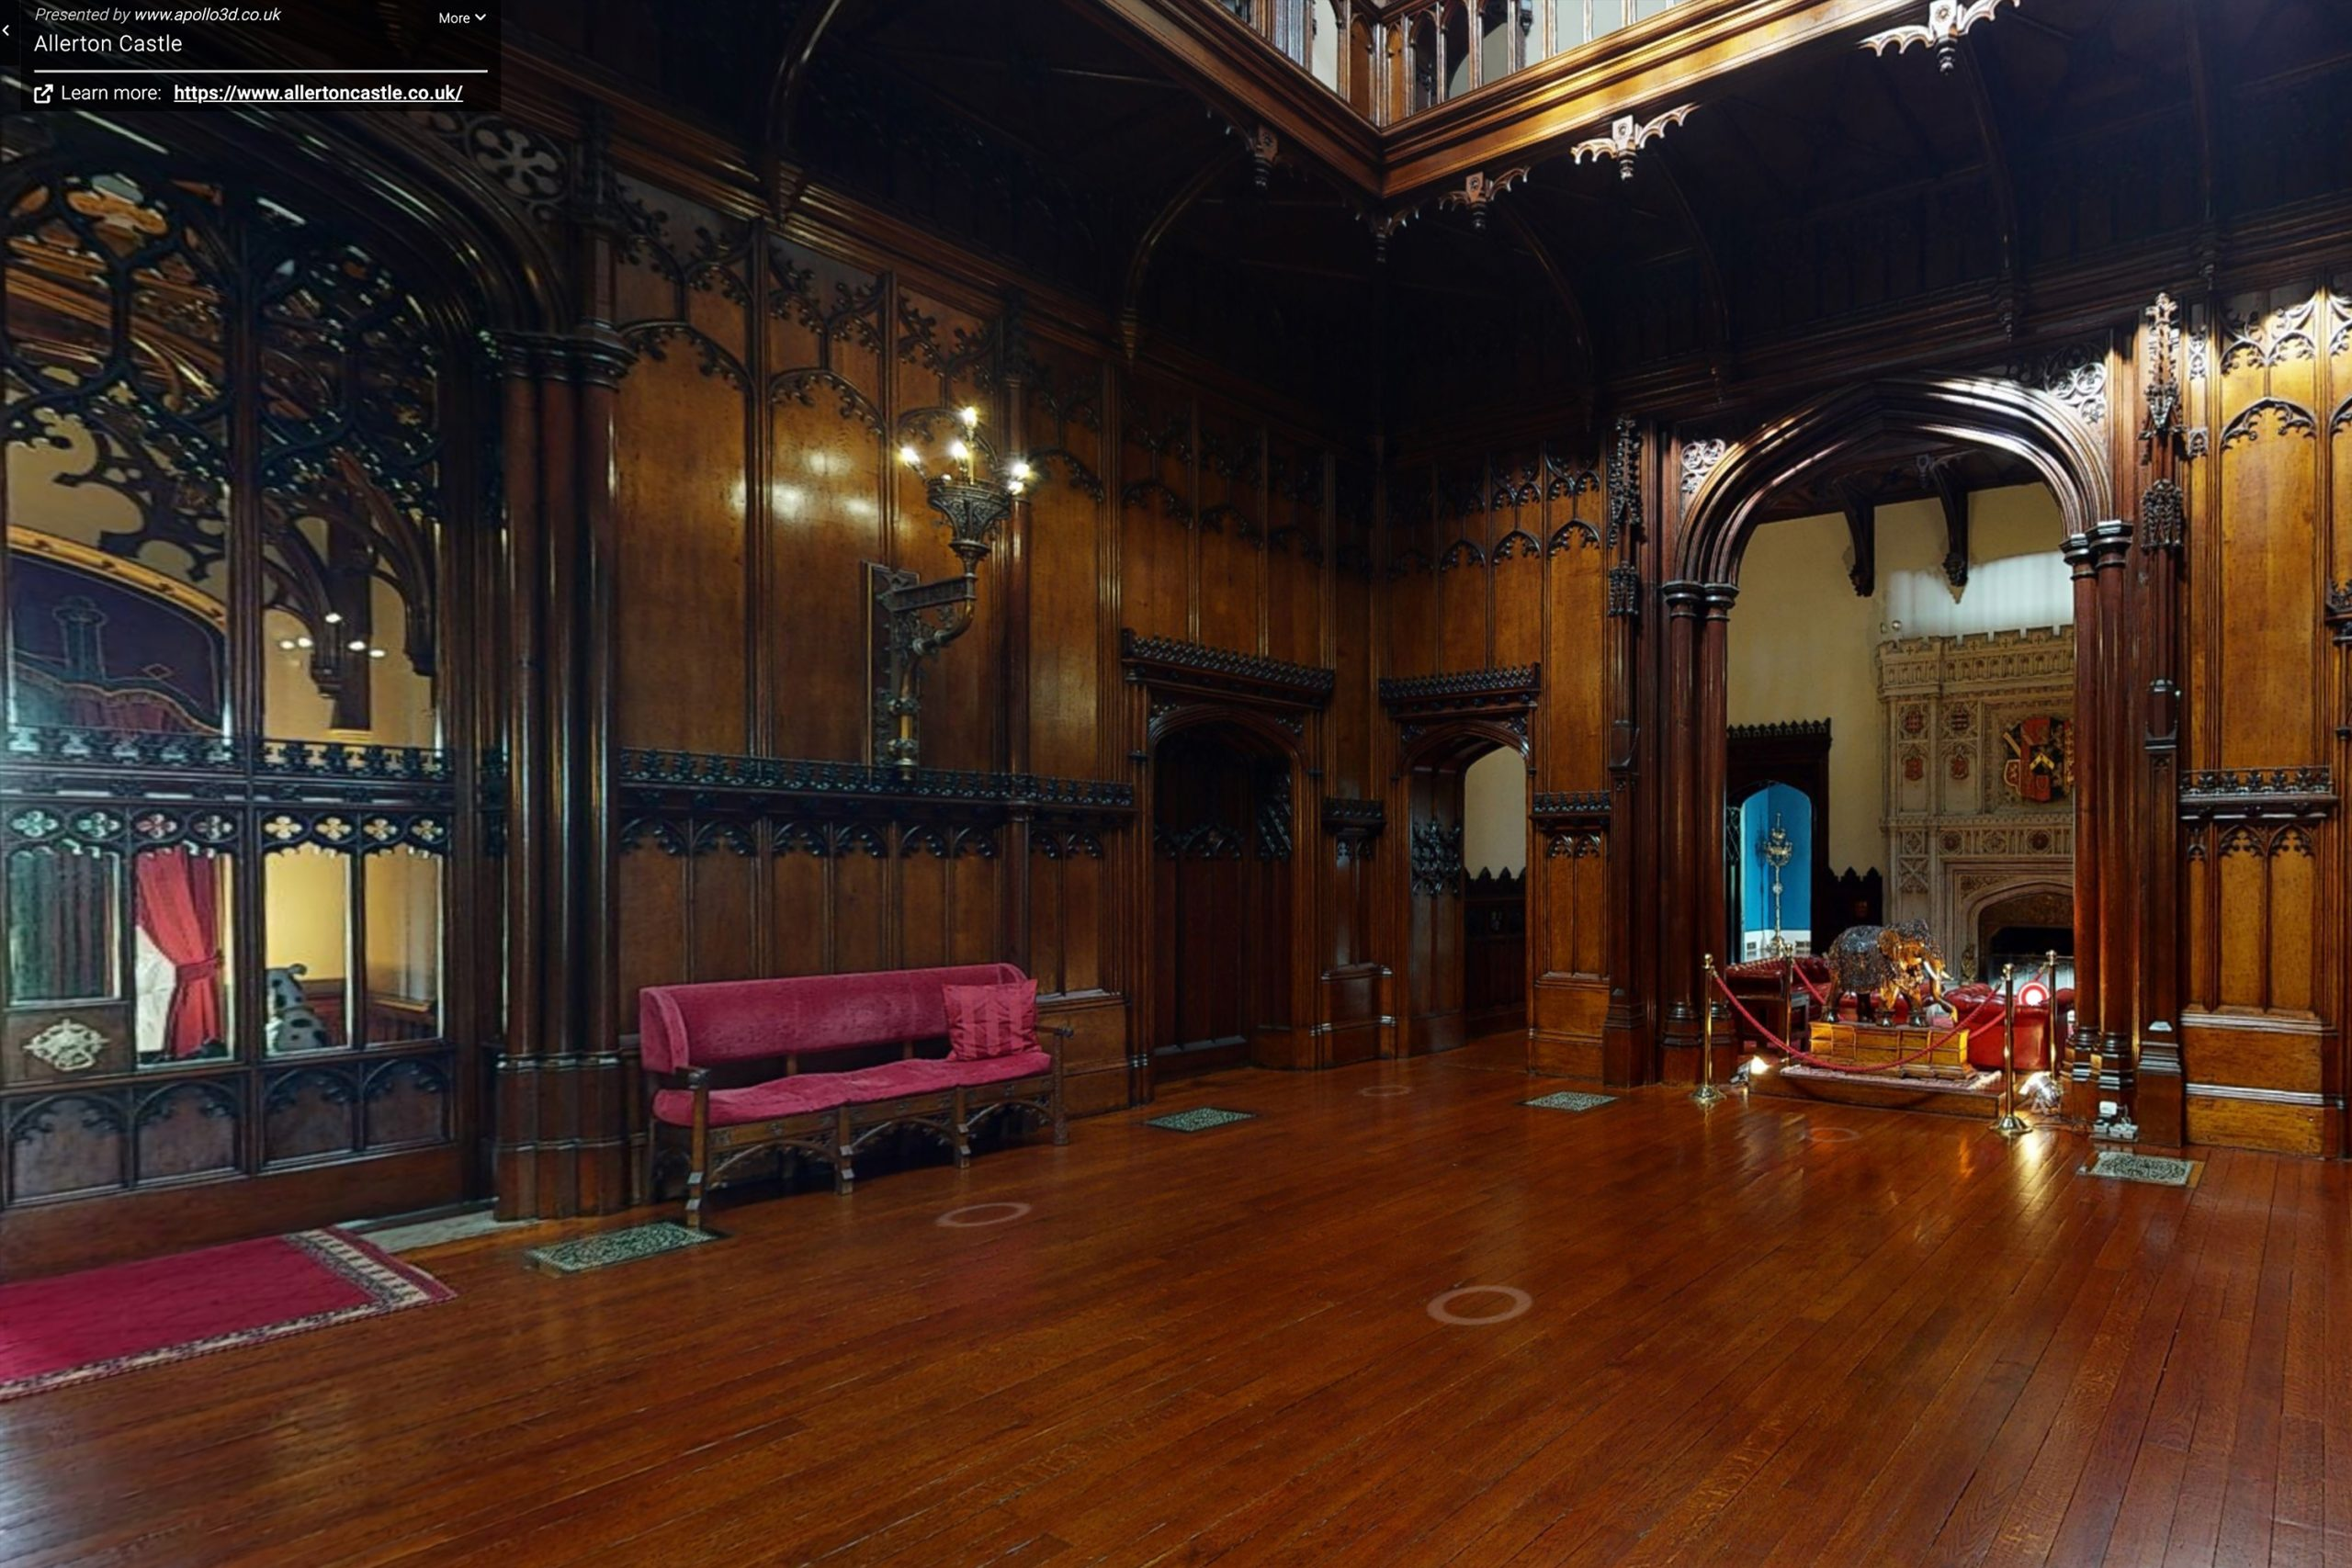 YFFUK Your Favourite Wedding PHotography Allerton Castle 3d tour main hall showing staircase